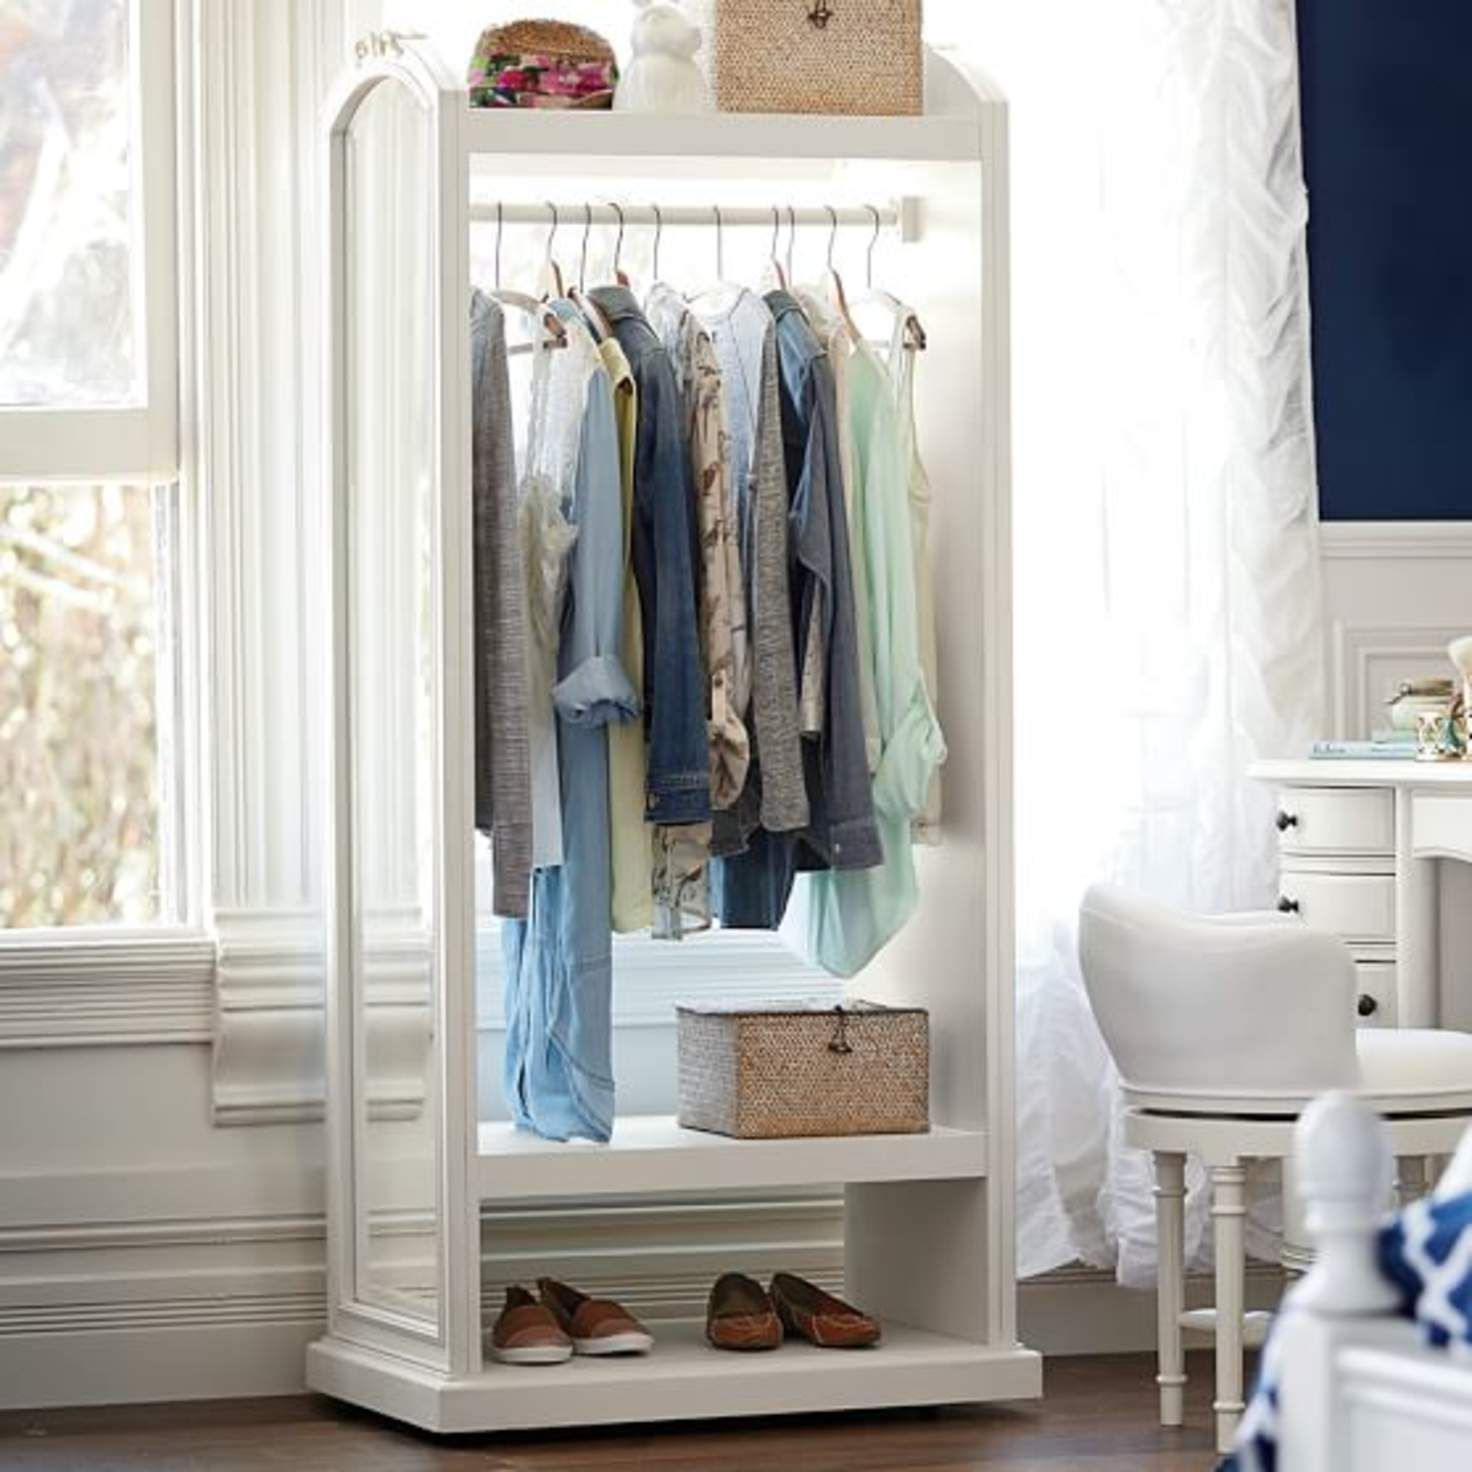 Smart Storage Solution For Small Spaces Or Apartments That Lack